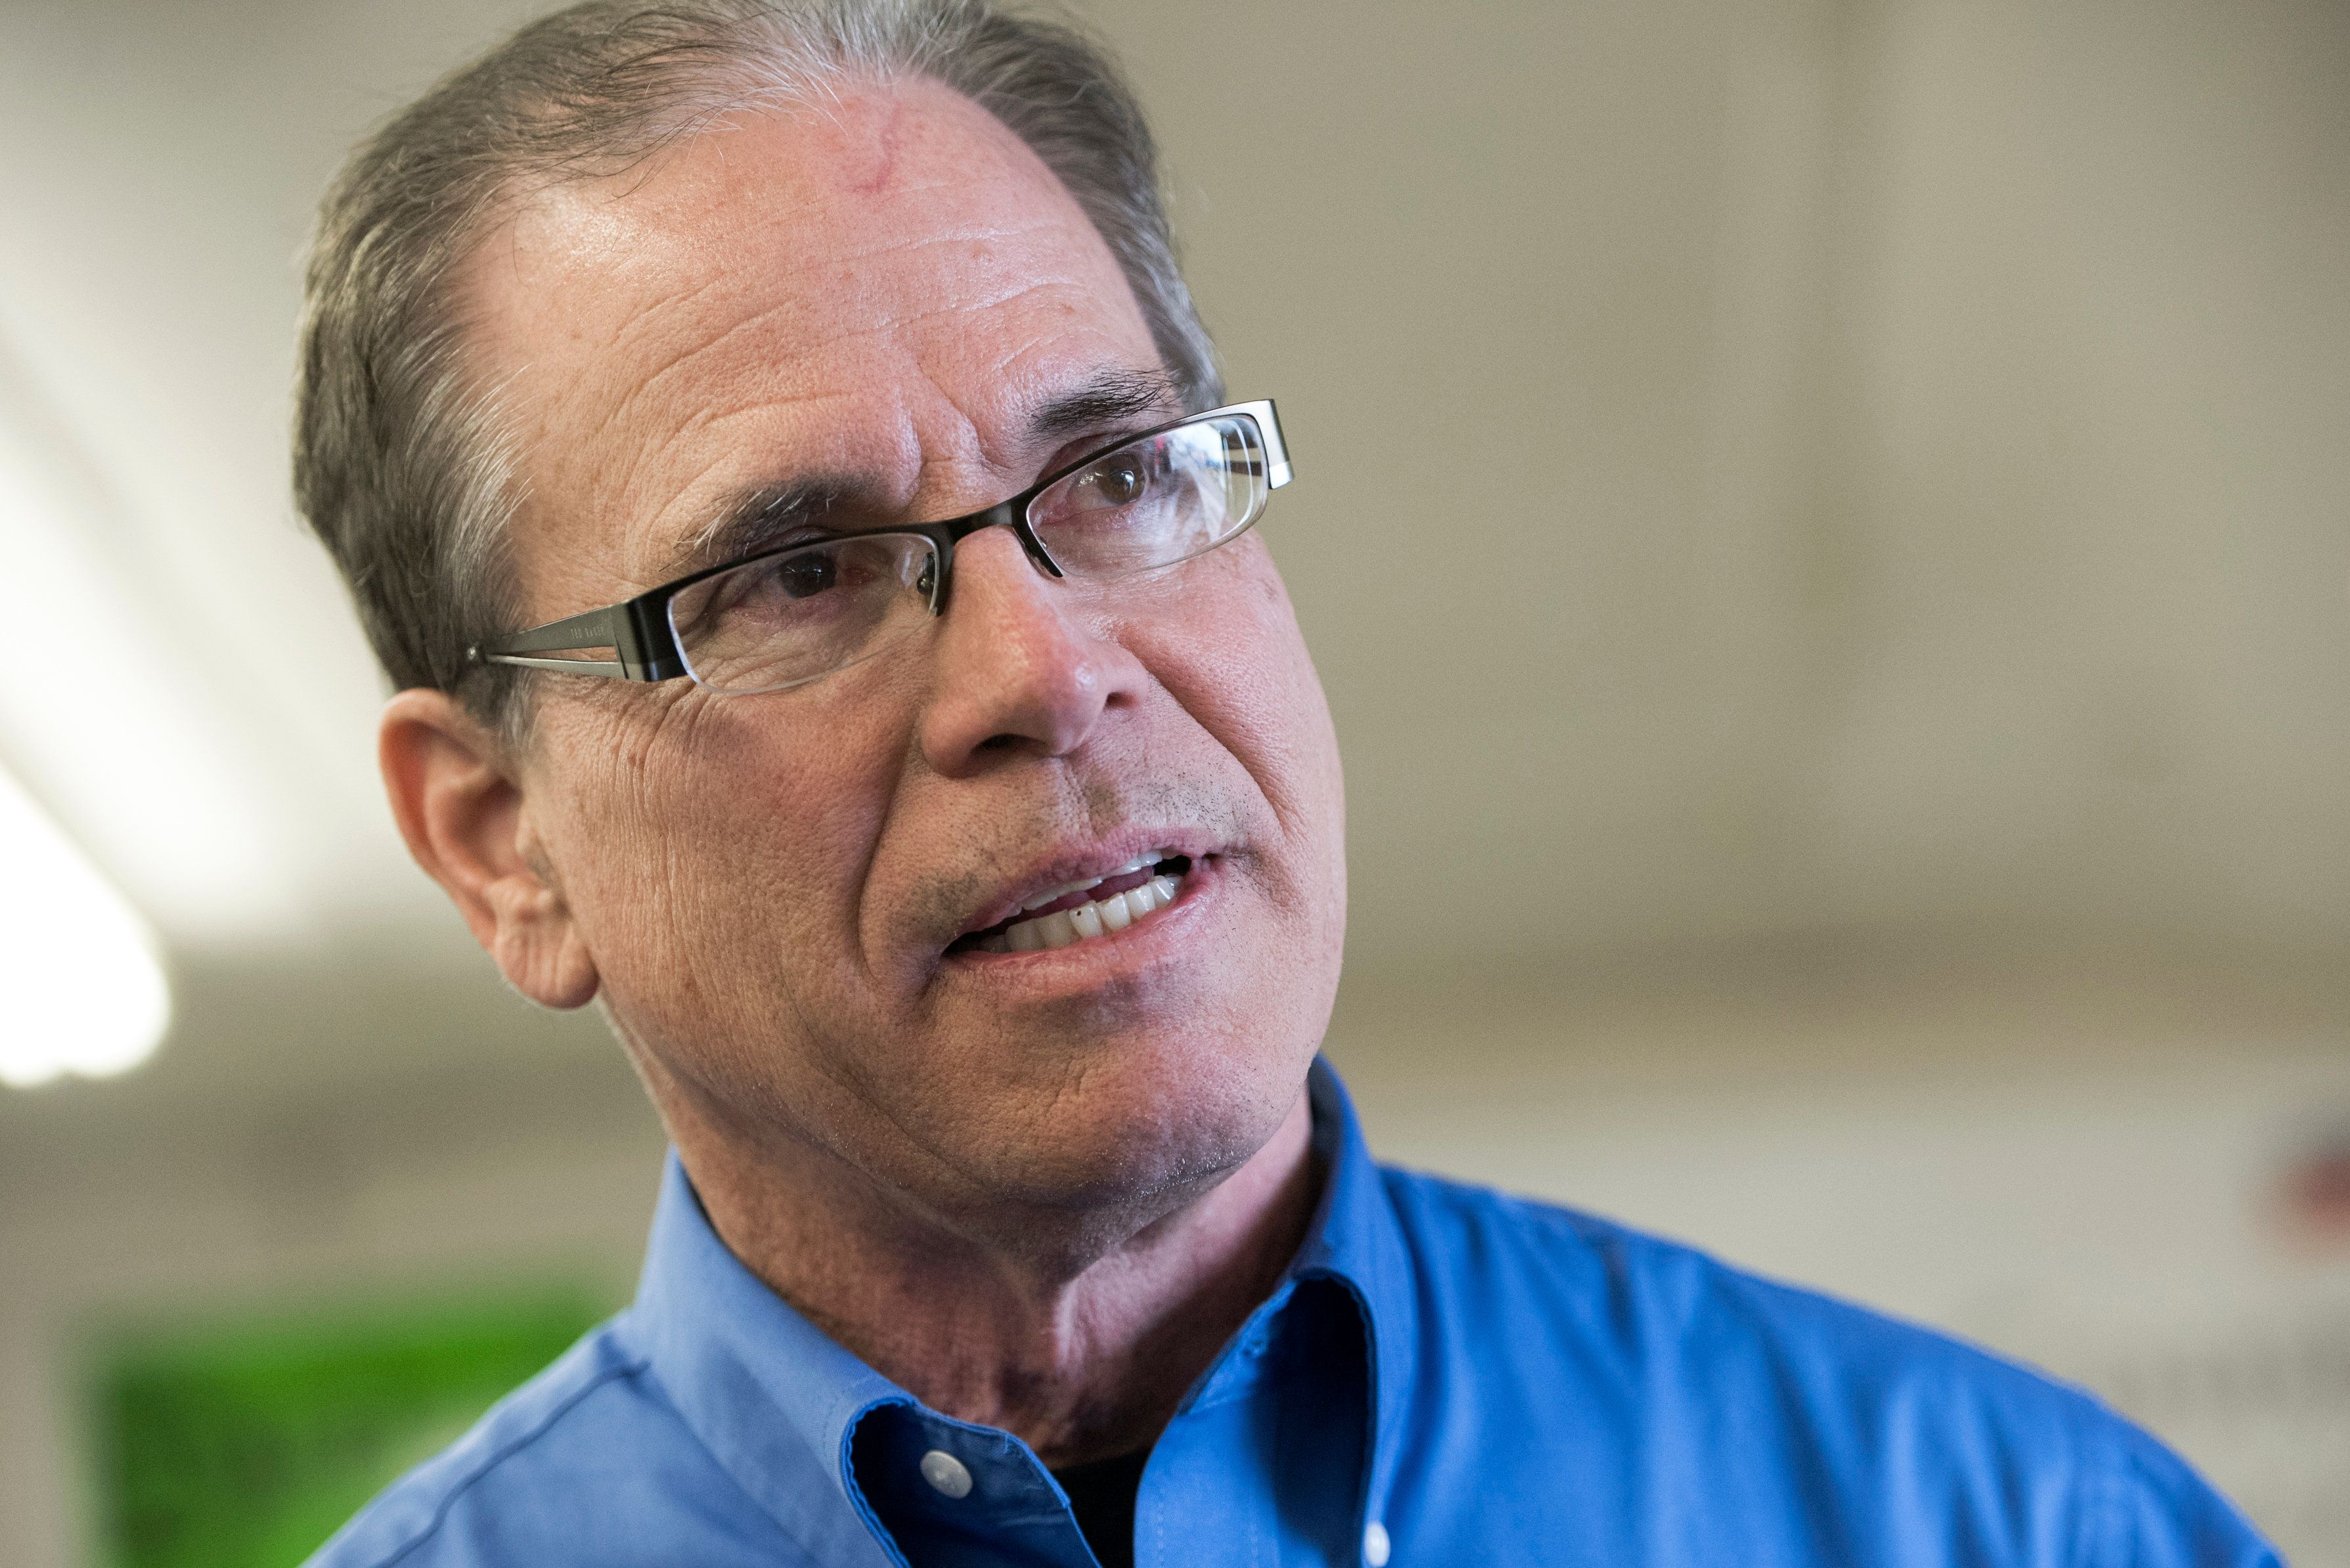 UNITED STATES - APRIL 4: Mike Braun, who is running for the Republican nomination for Senate in Indiana, attends the Kosciusko County Republican Fish Fry in Warsaw, Ind., on April 4, 2018. (Photo By Tom Williams/CQ Roll Call)